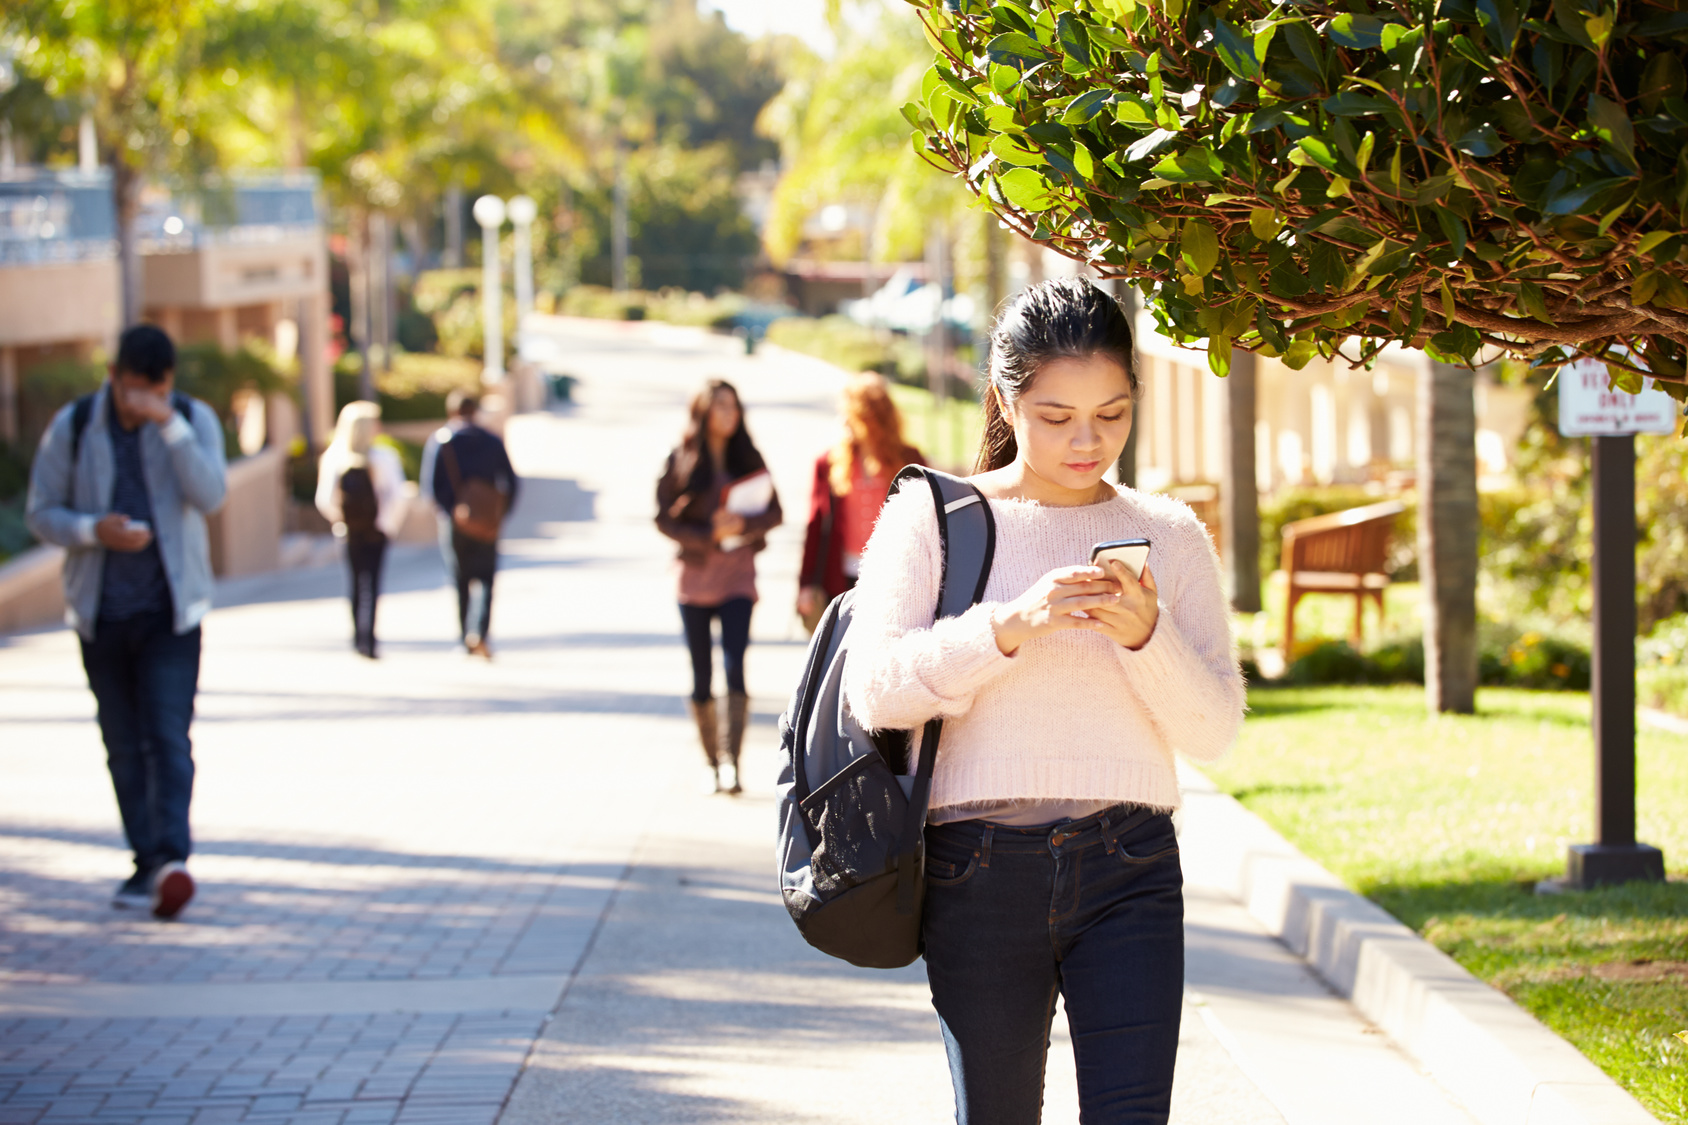 BBB Trends: College students should avoid these hard ...